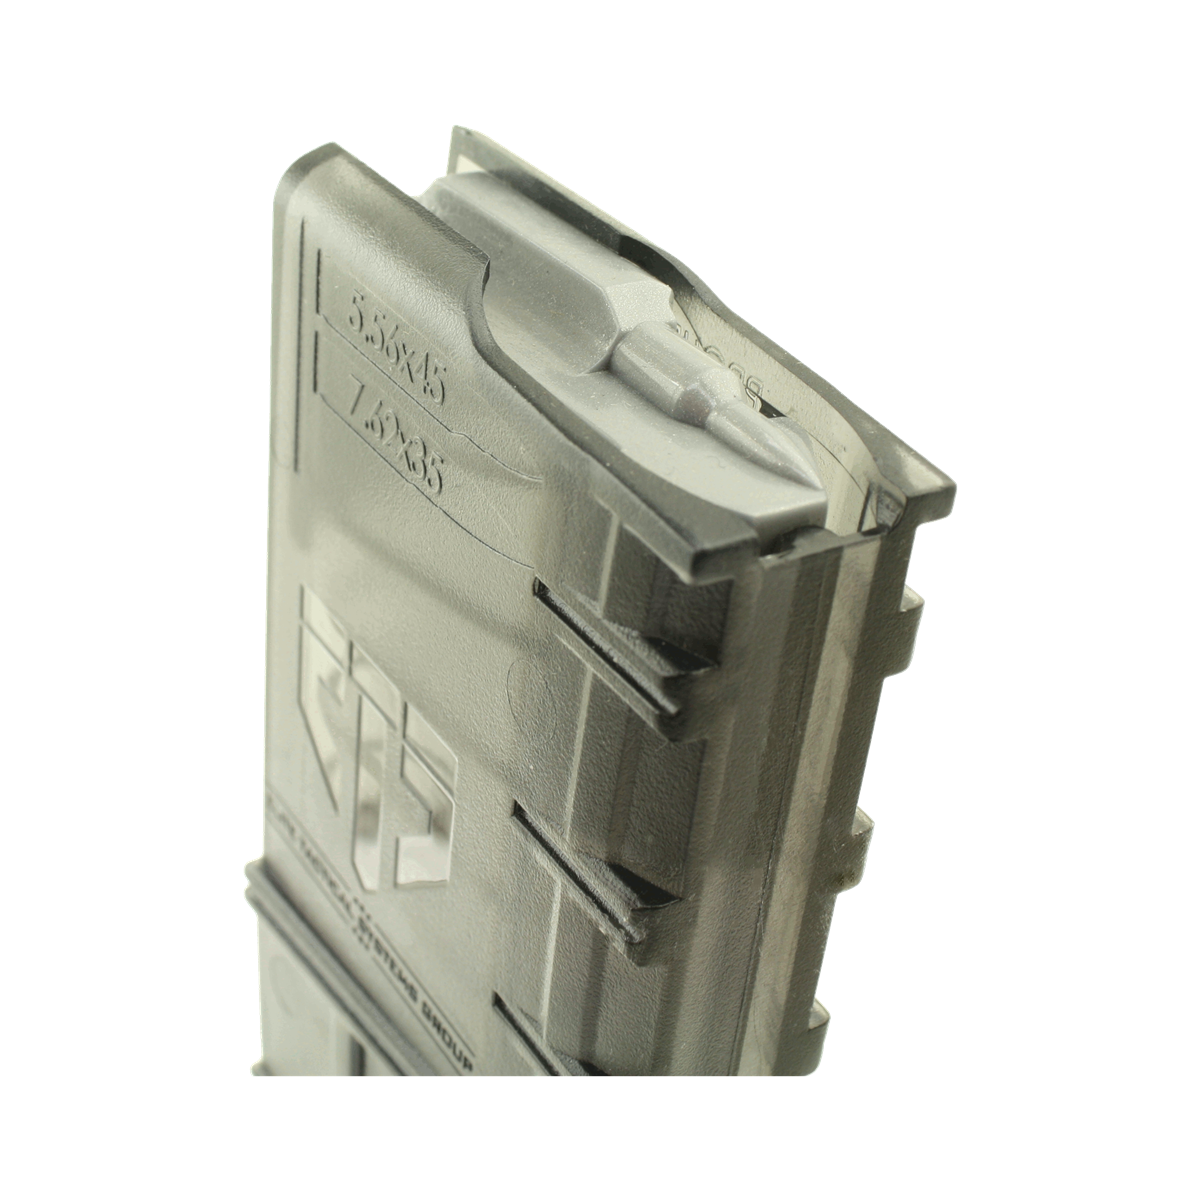 Ar clip coupler. Ets group magazine round